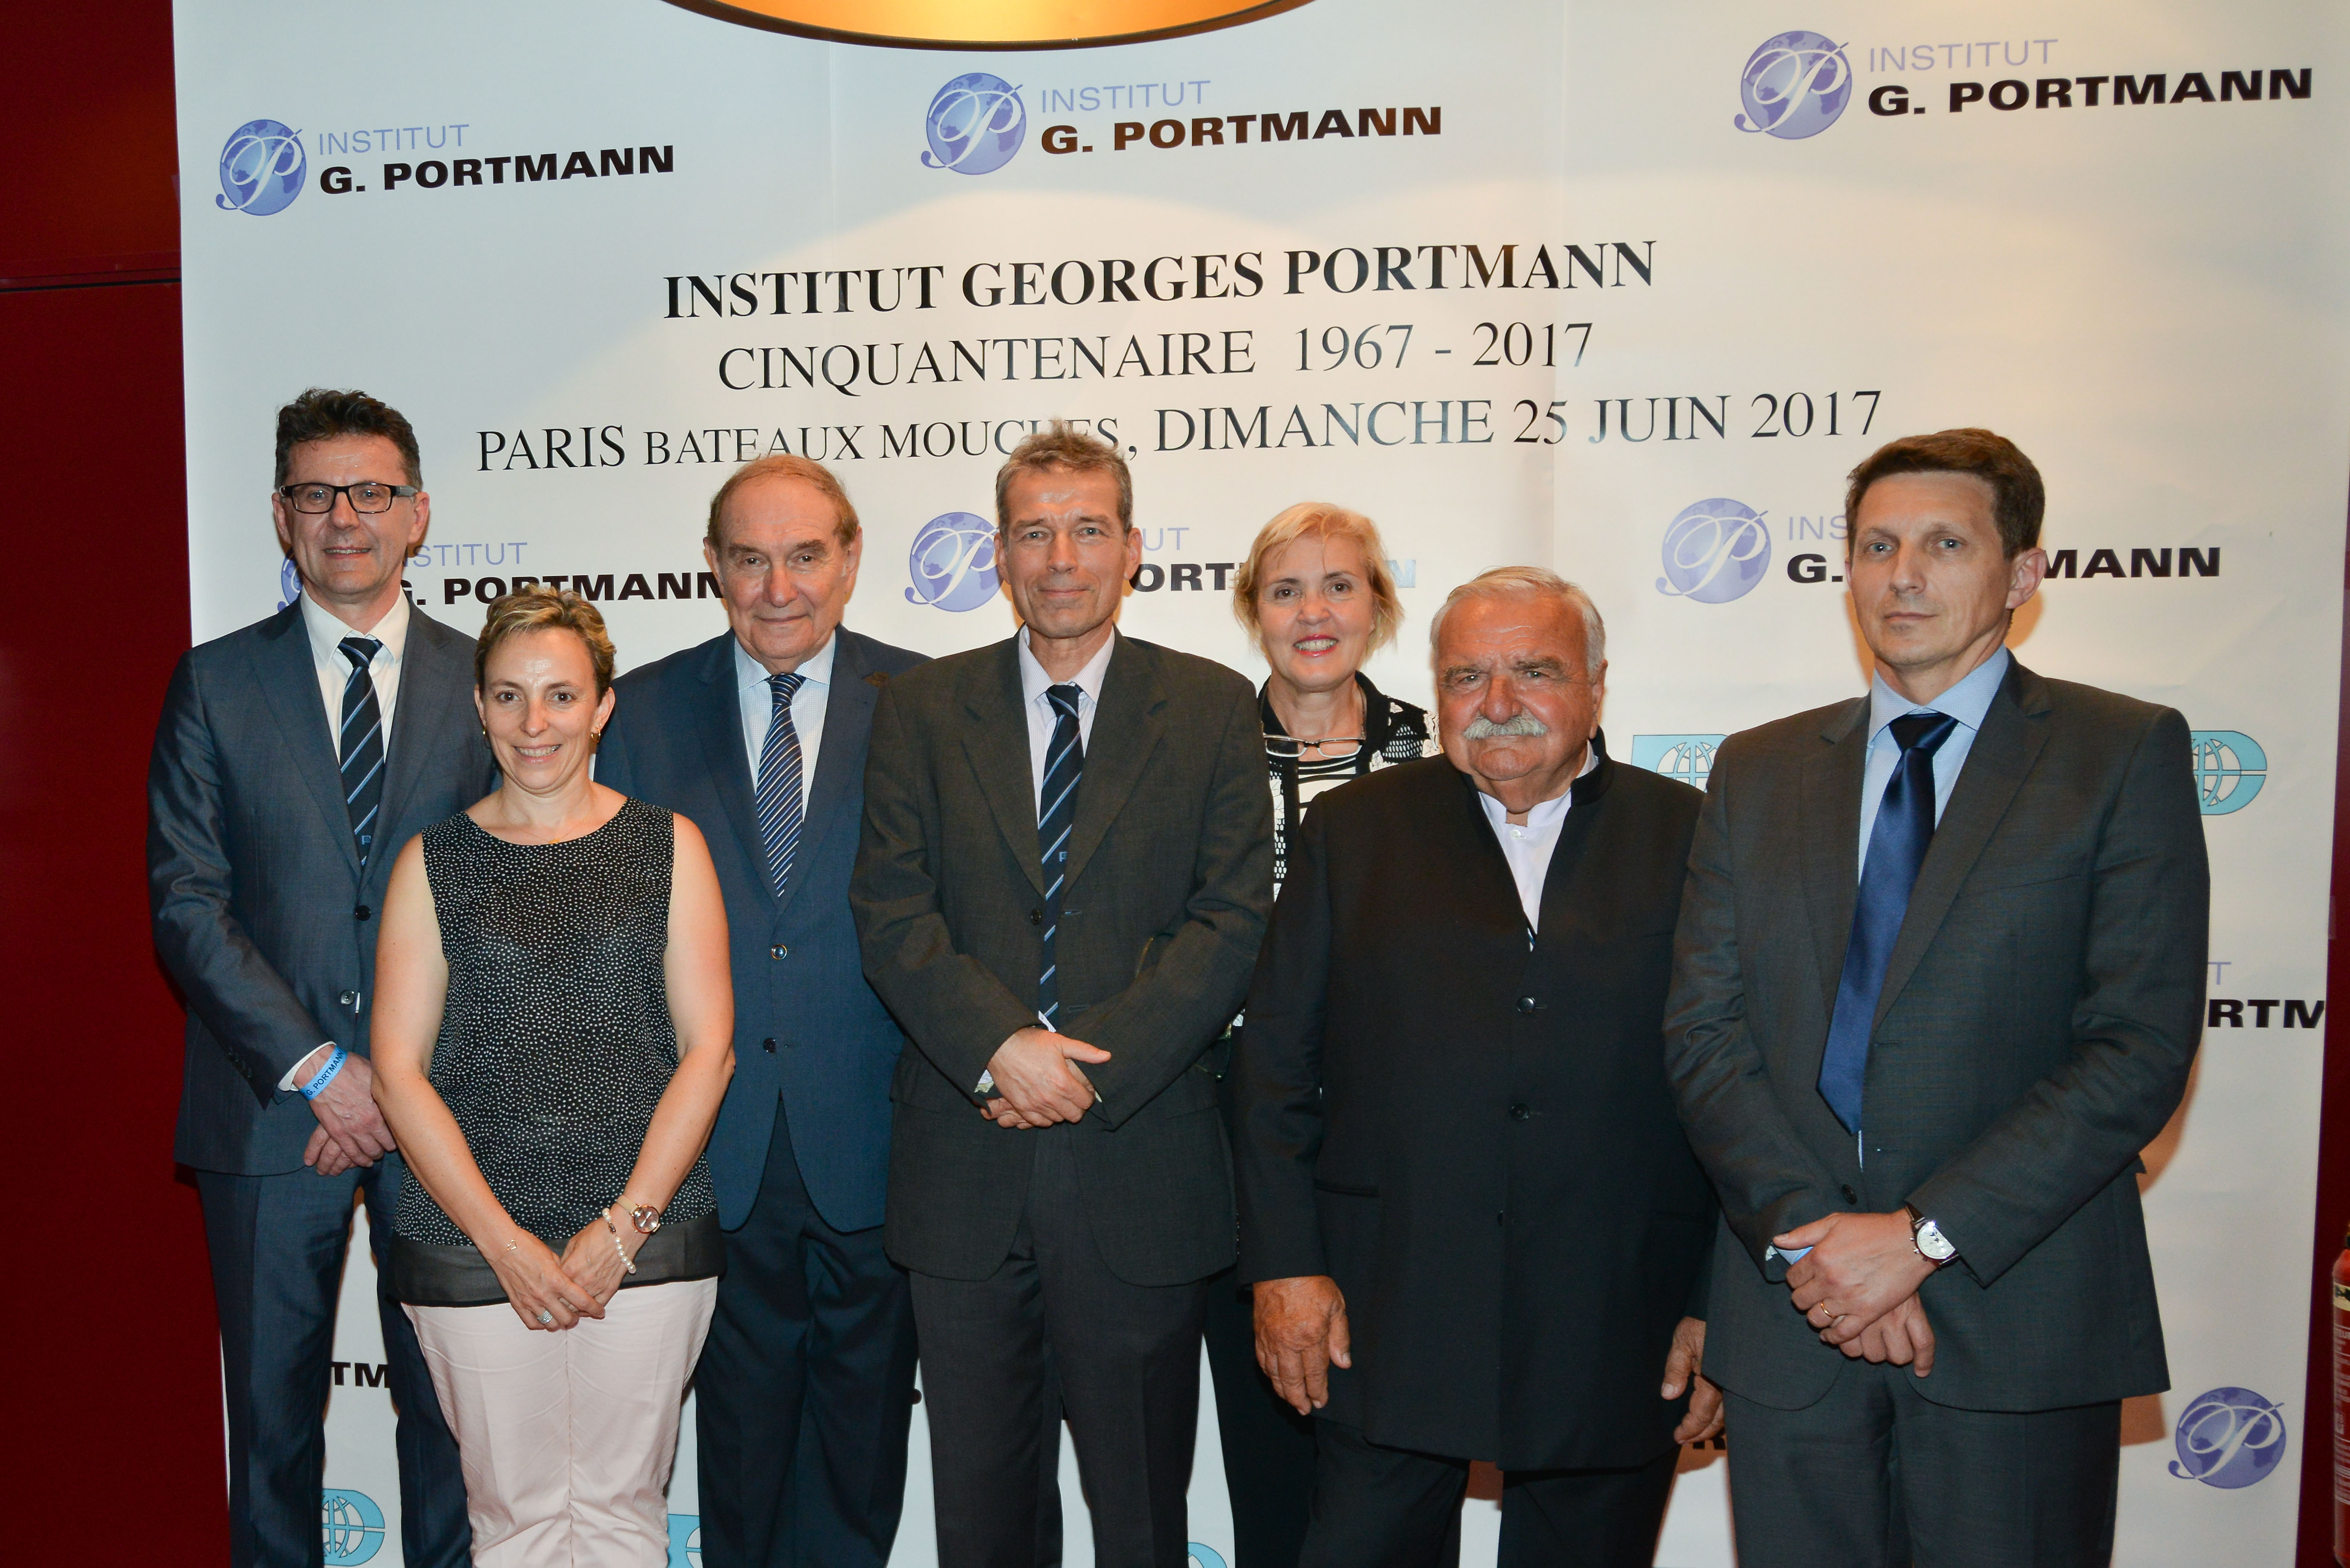 50th anniversary of the G. Portmann Institute